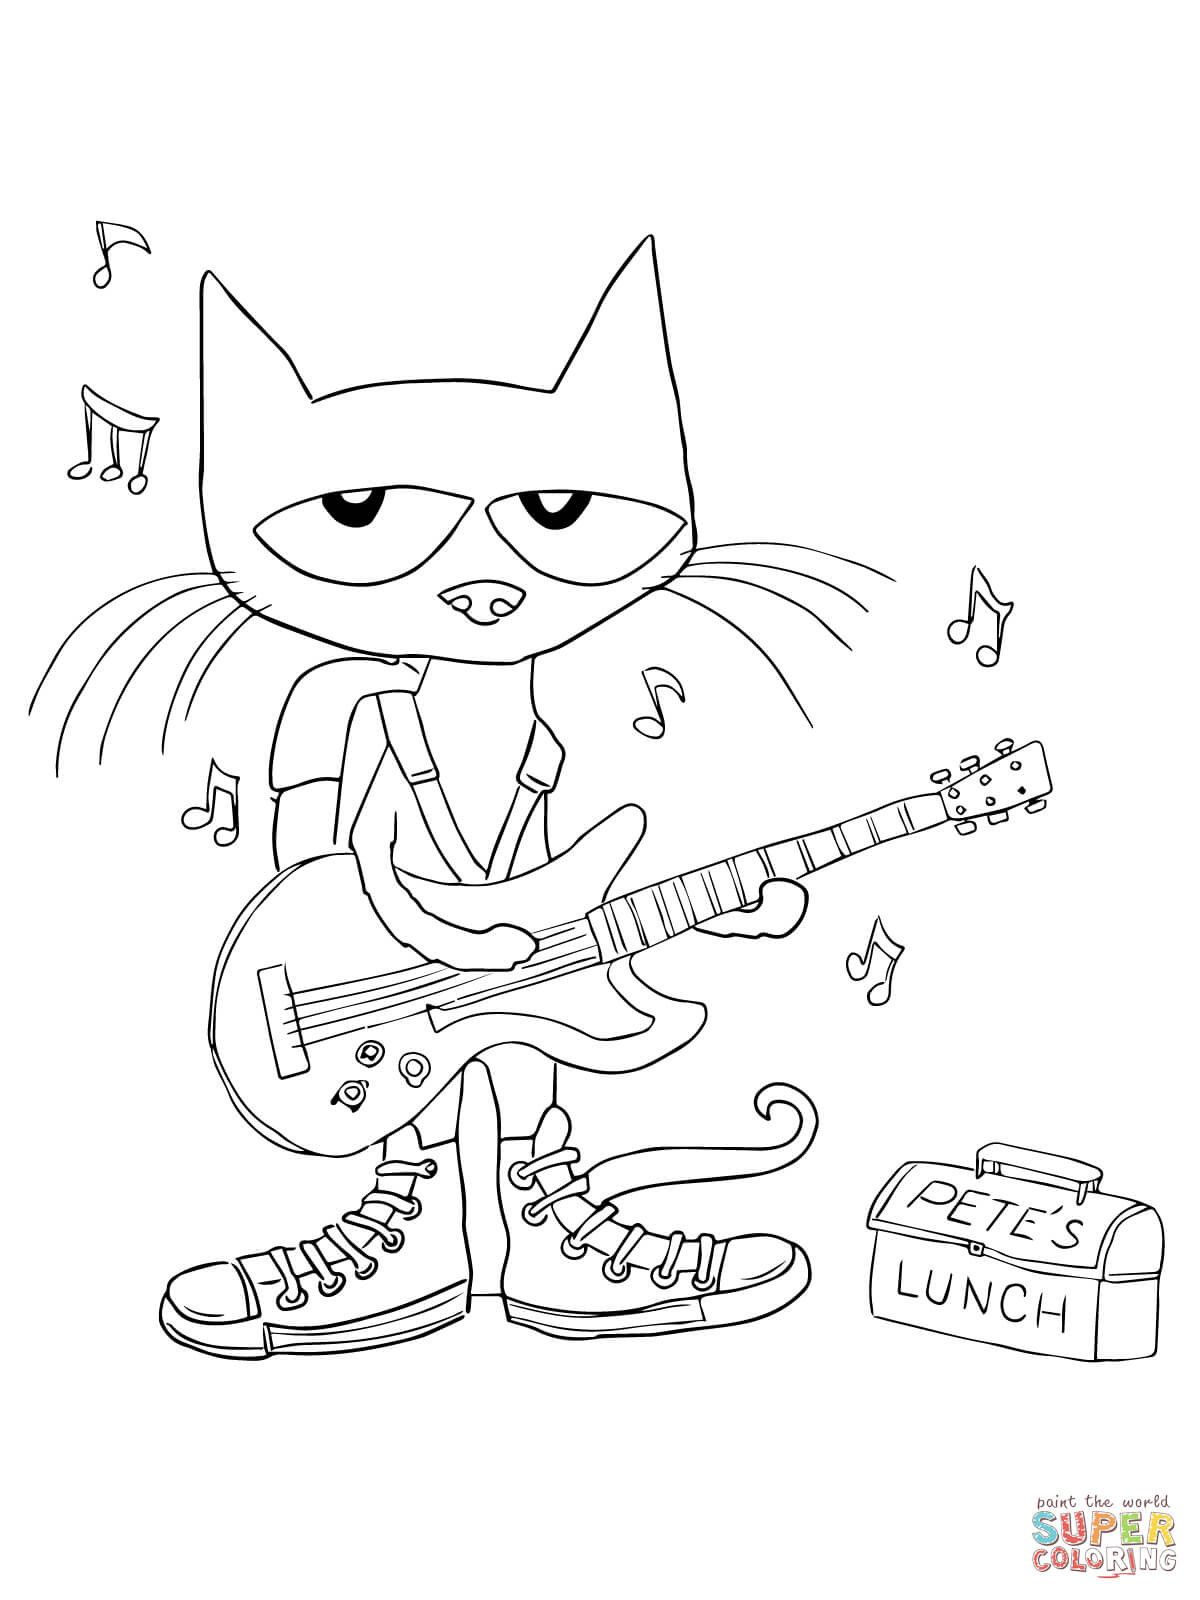 Pete The Cat And His Magic Sunglasses Coloring Page In 2020 Cat Coloring Page Halloween Coloring Pages Printable Halloween Coloring Sheets